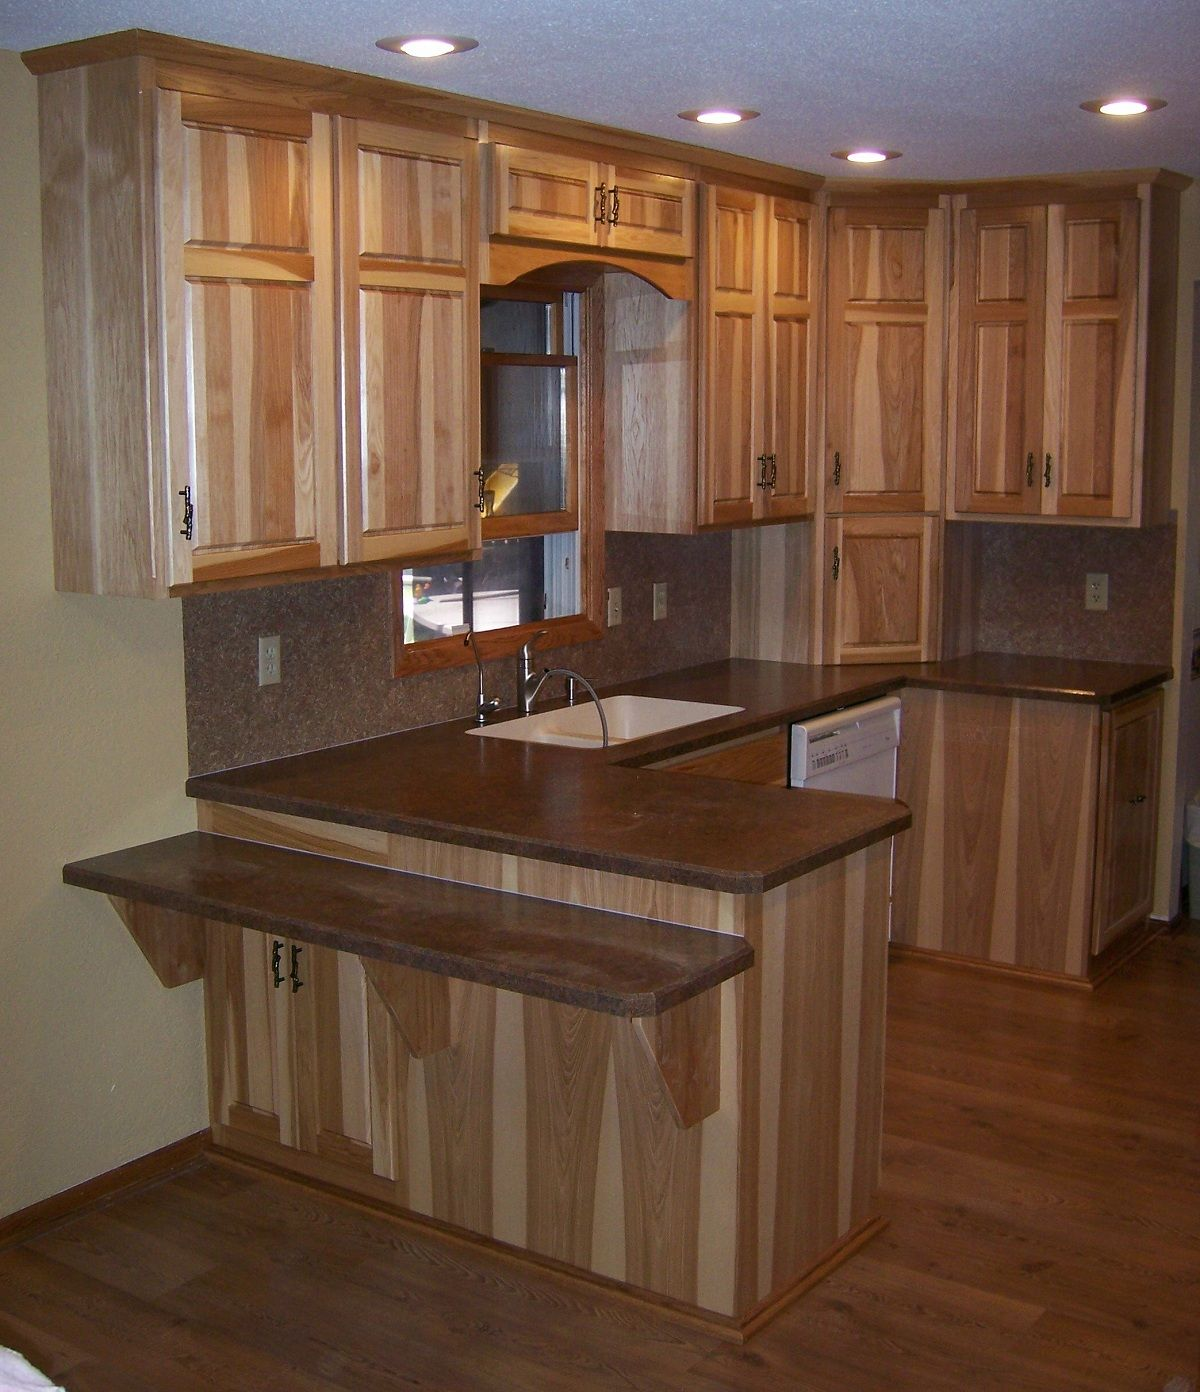 Assembled Hickory Kitchen Cabinets Download Hickory Raised Panel Split Kitchen Design Hickory Kitchen Hickory Kitchen Cabinets